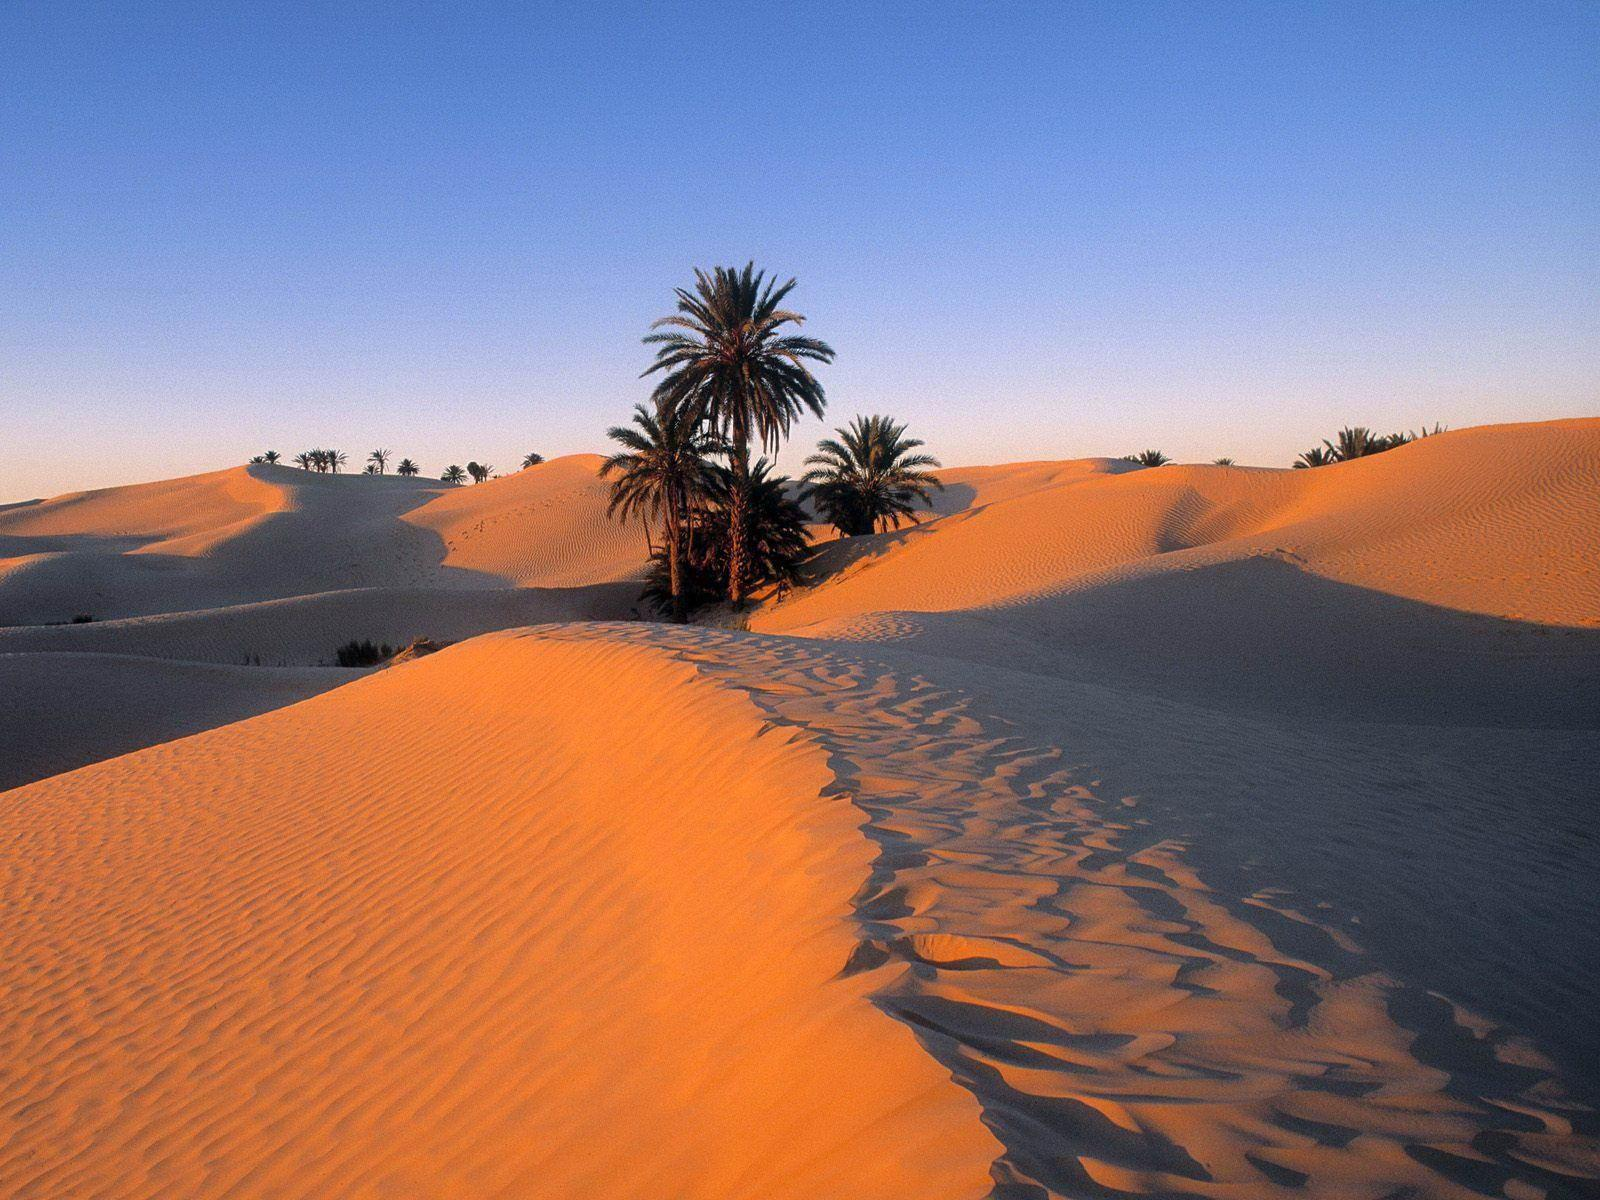 Sahara Desert and Palm Trees Wallpapers